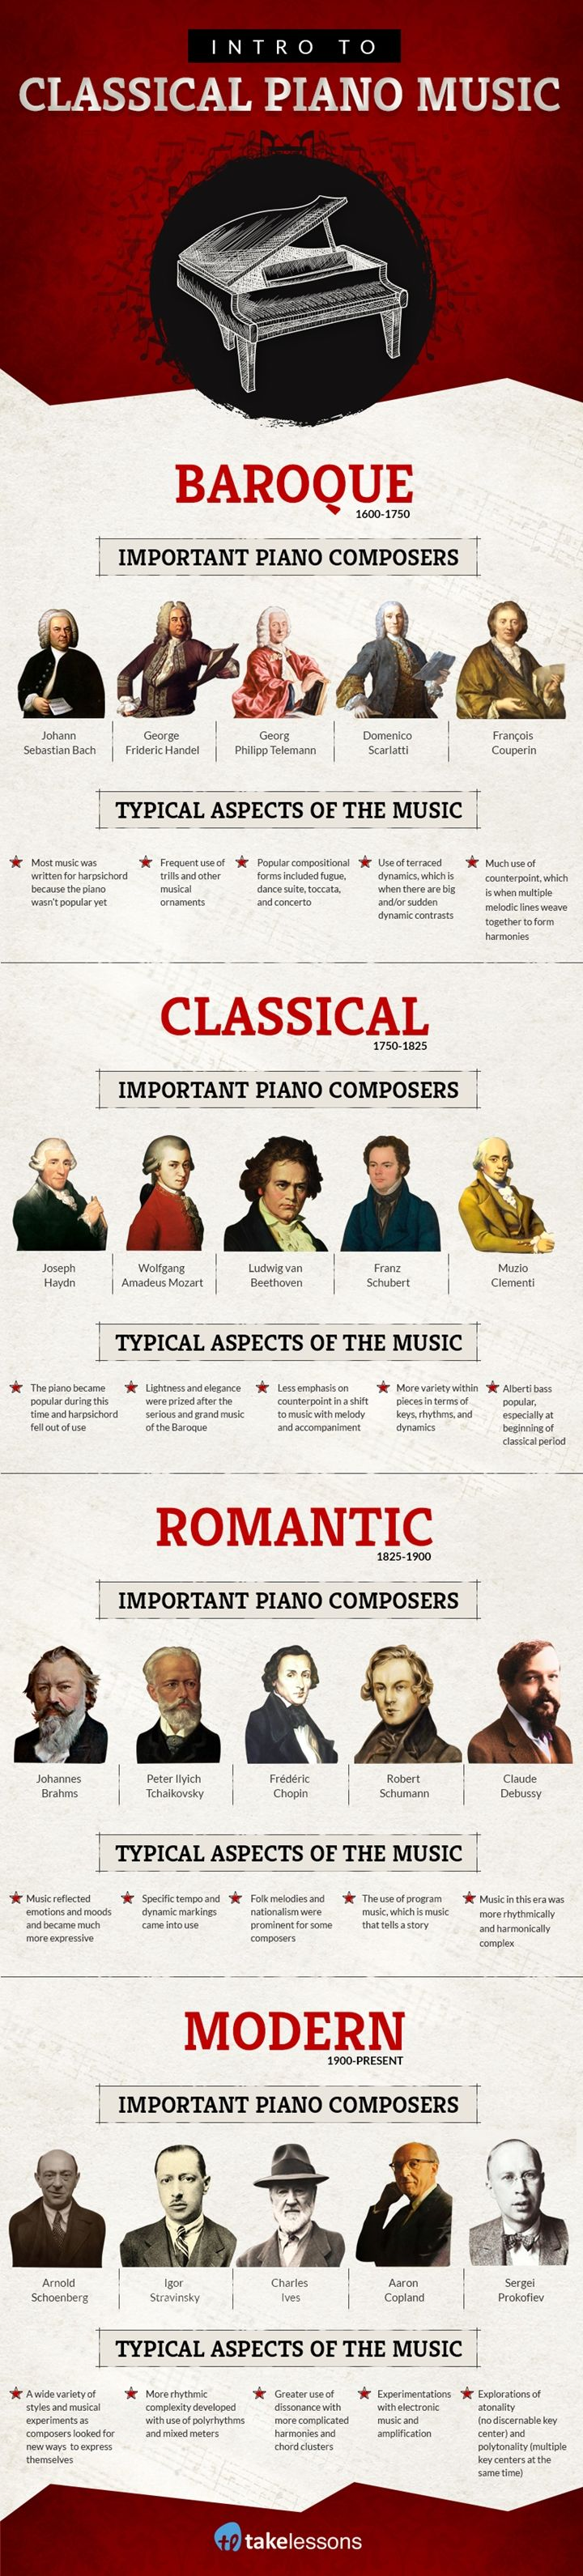 Intro to Classical Piano Music Styles [Infographic] http://takelessons.com/blog/classical-piano-music-styles-z06?utm_source=Social&utm_medium=Blog&utm_campaign=Pinterest